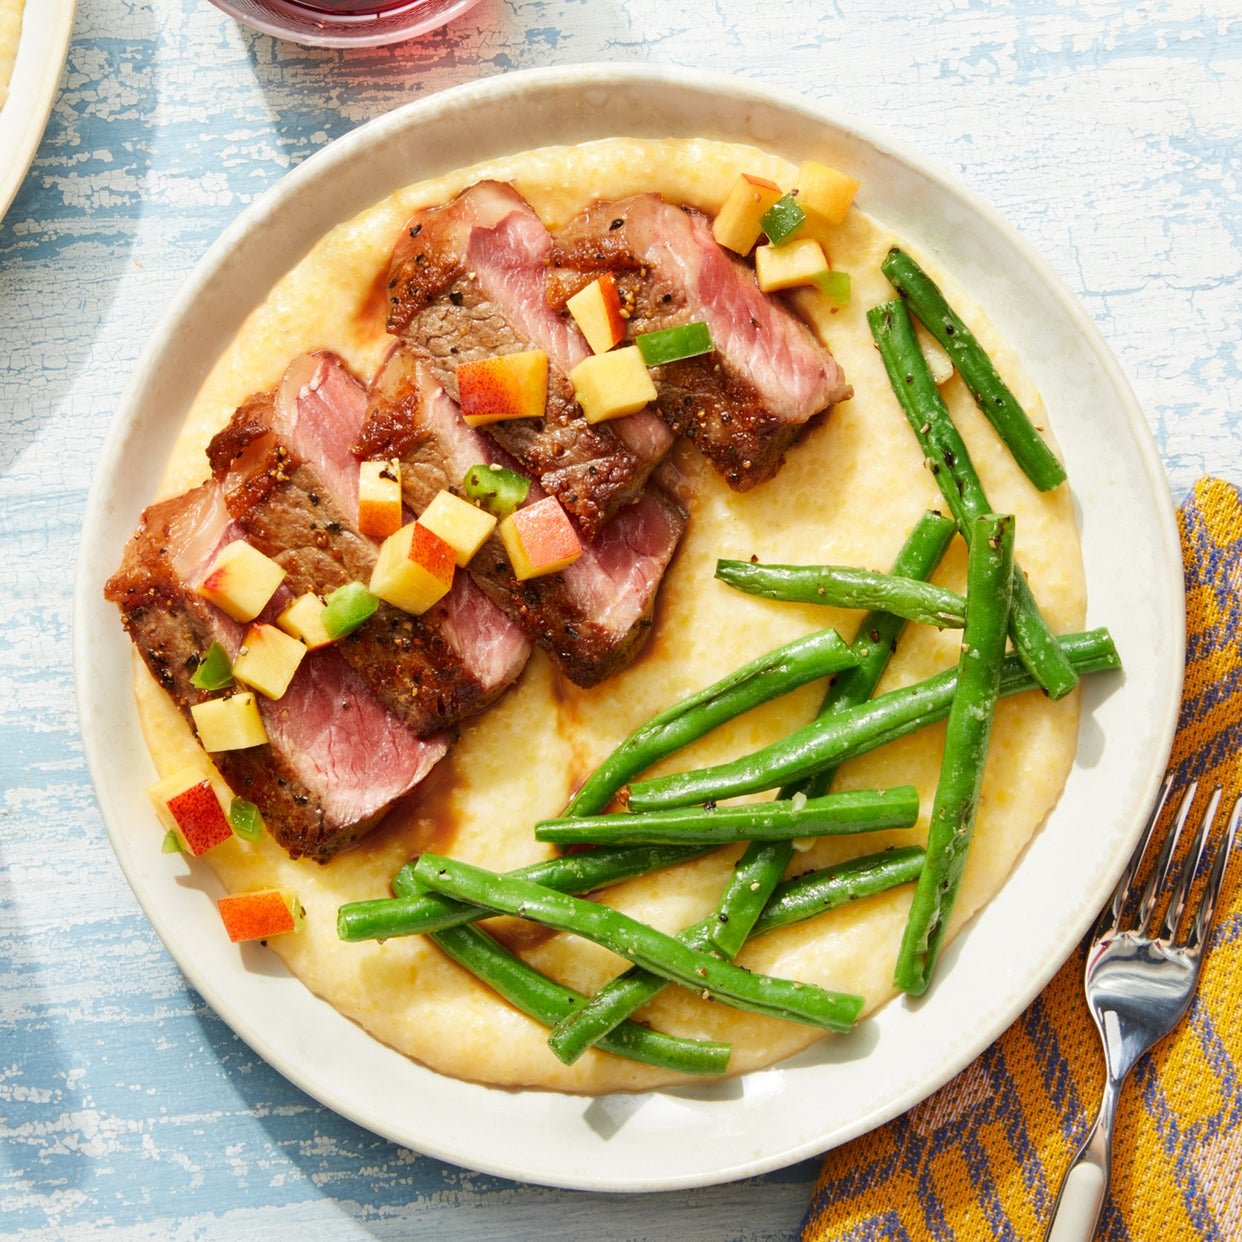 MasterChef Seared Steak over Goat Cheese Polenta with Jalapeño-Peach Salsa